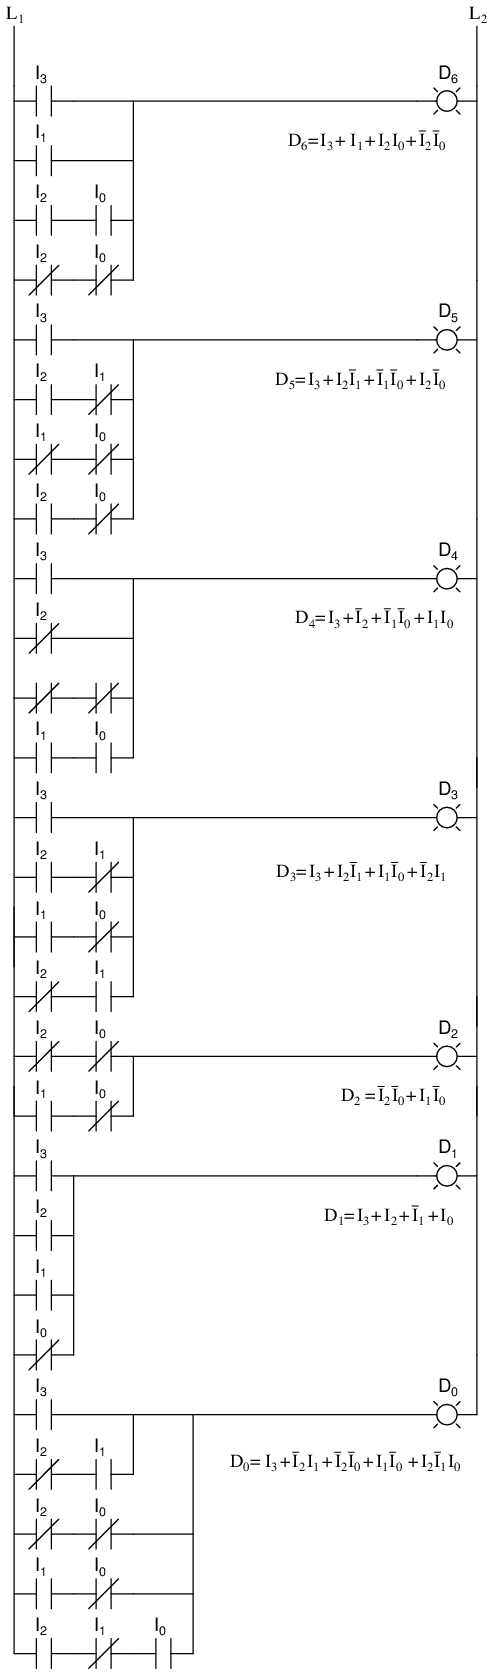 Lessons In Electric Circuits Volume Iv Digital Chapter 9 2 4 Decoder Logic Diagram